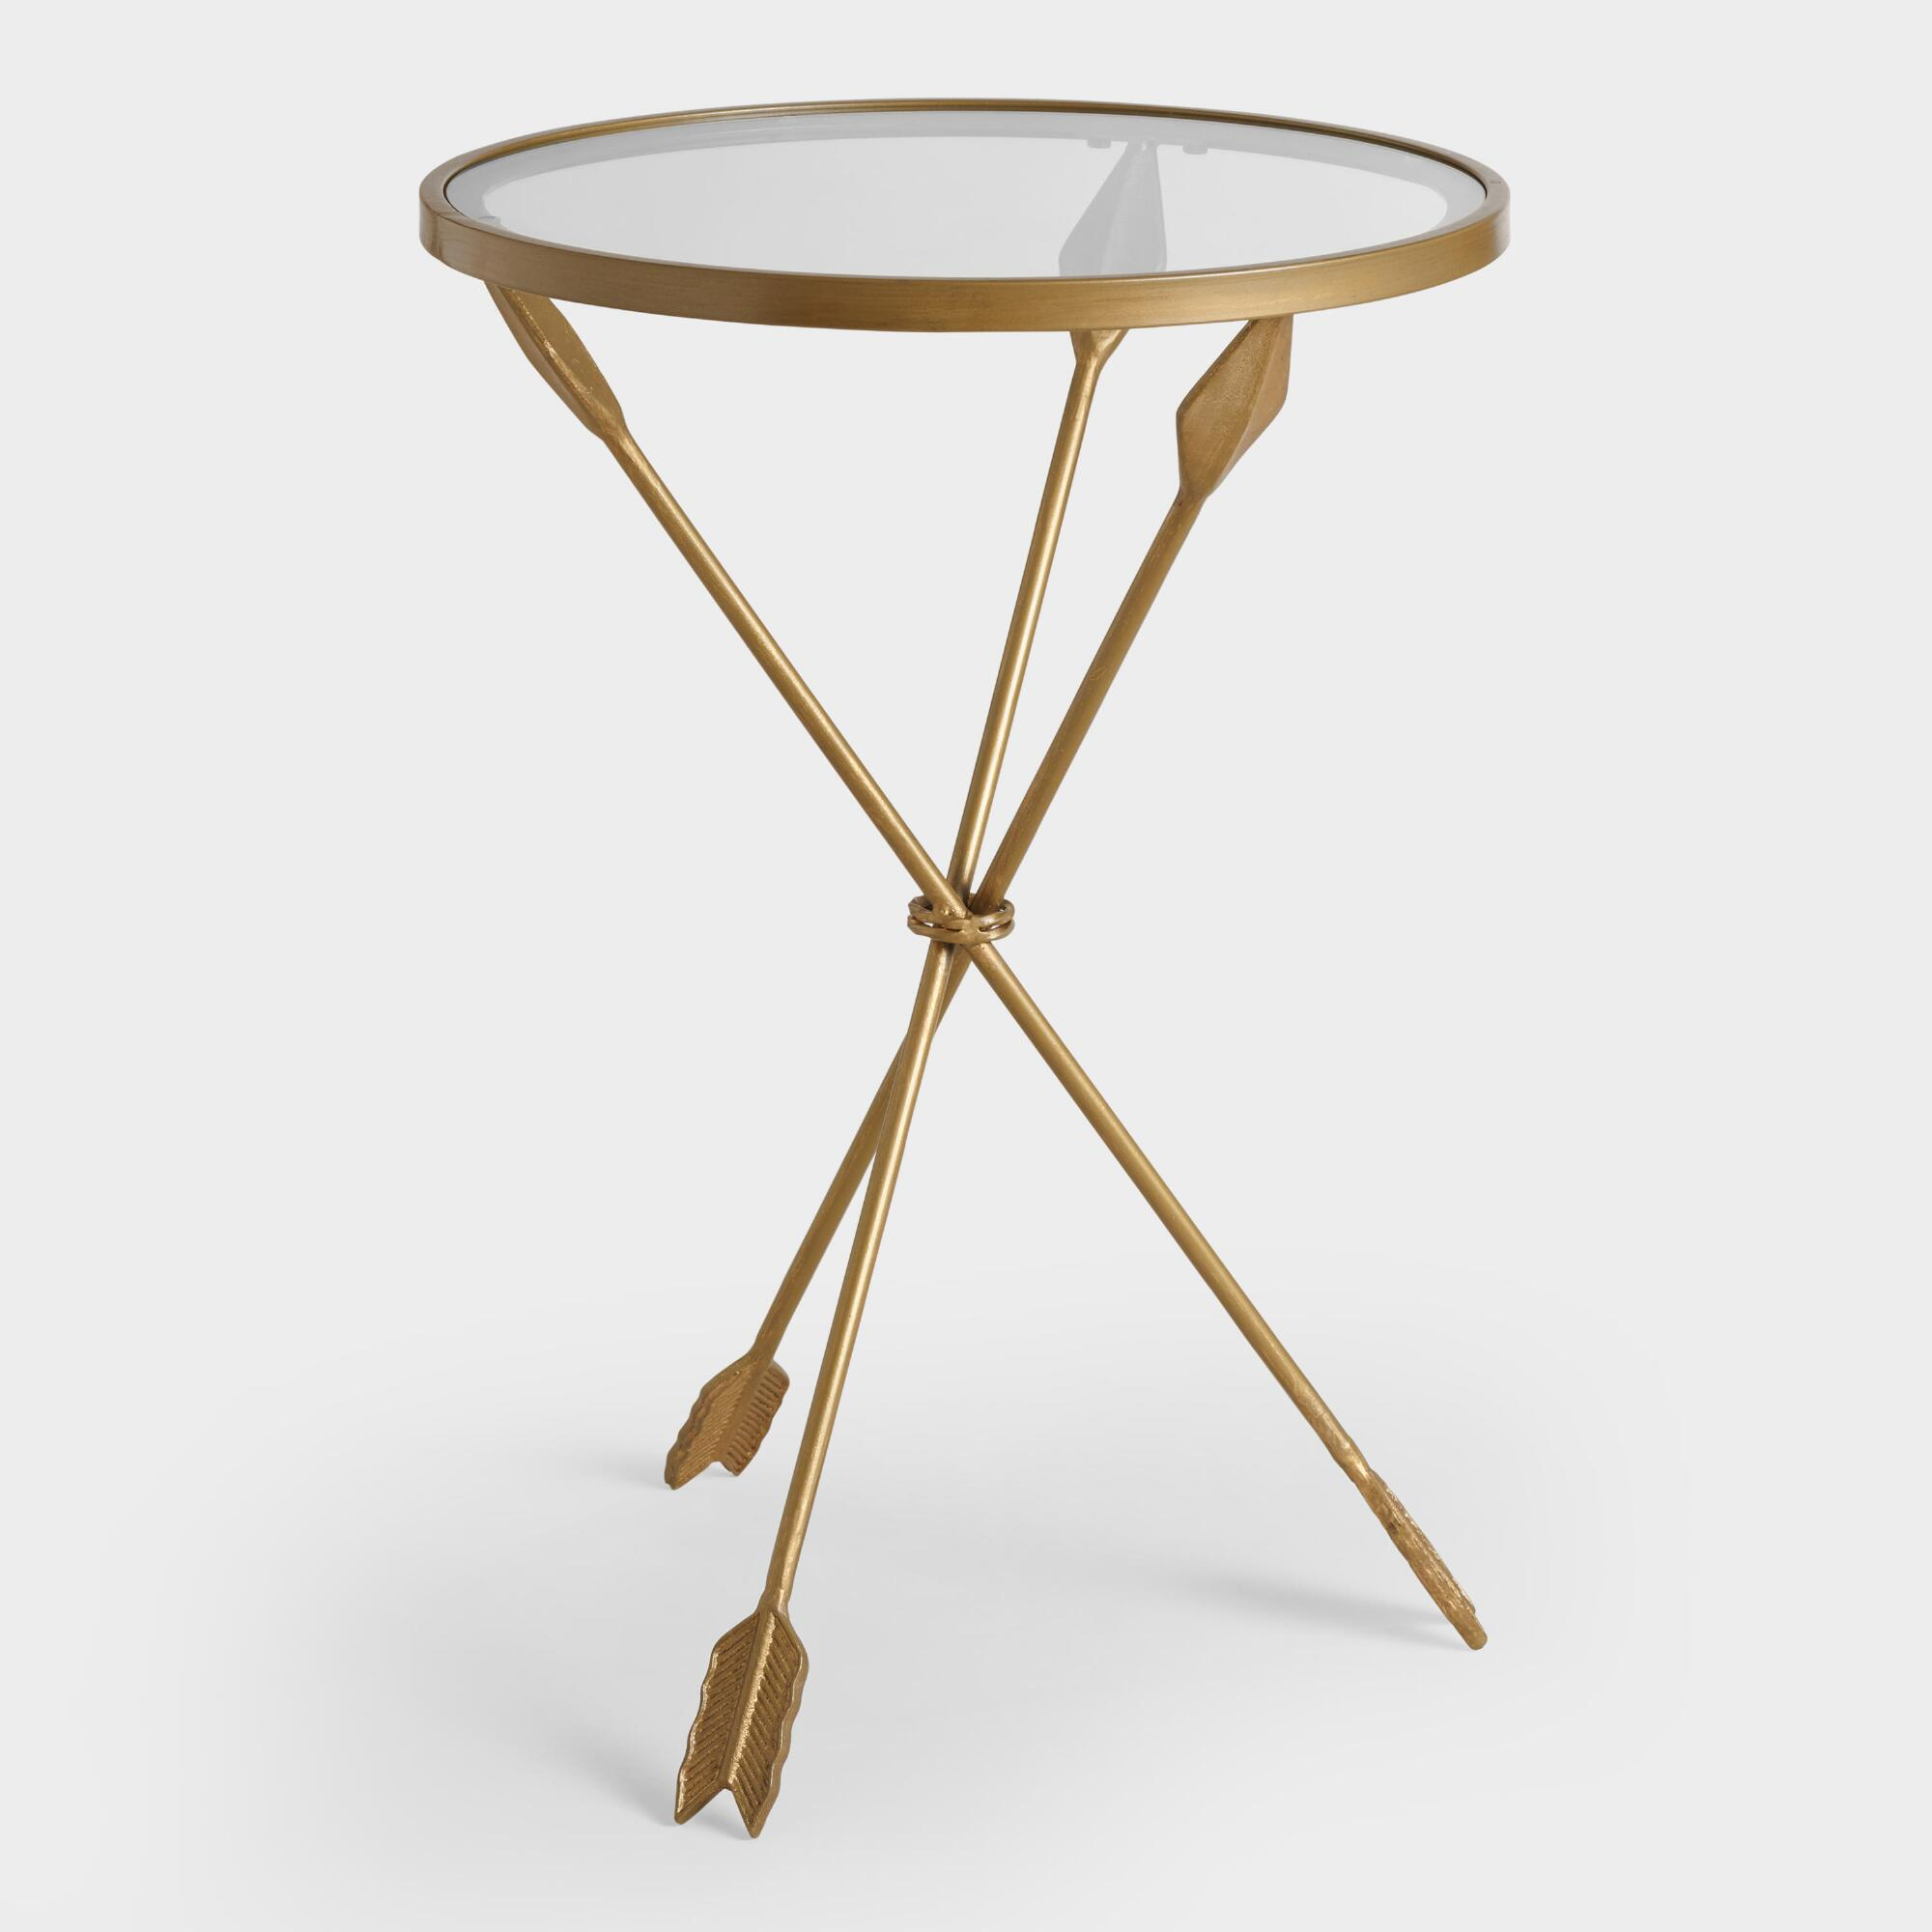 black and en product indy world side the looking online for table at shop an gold sidetable